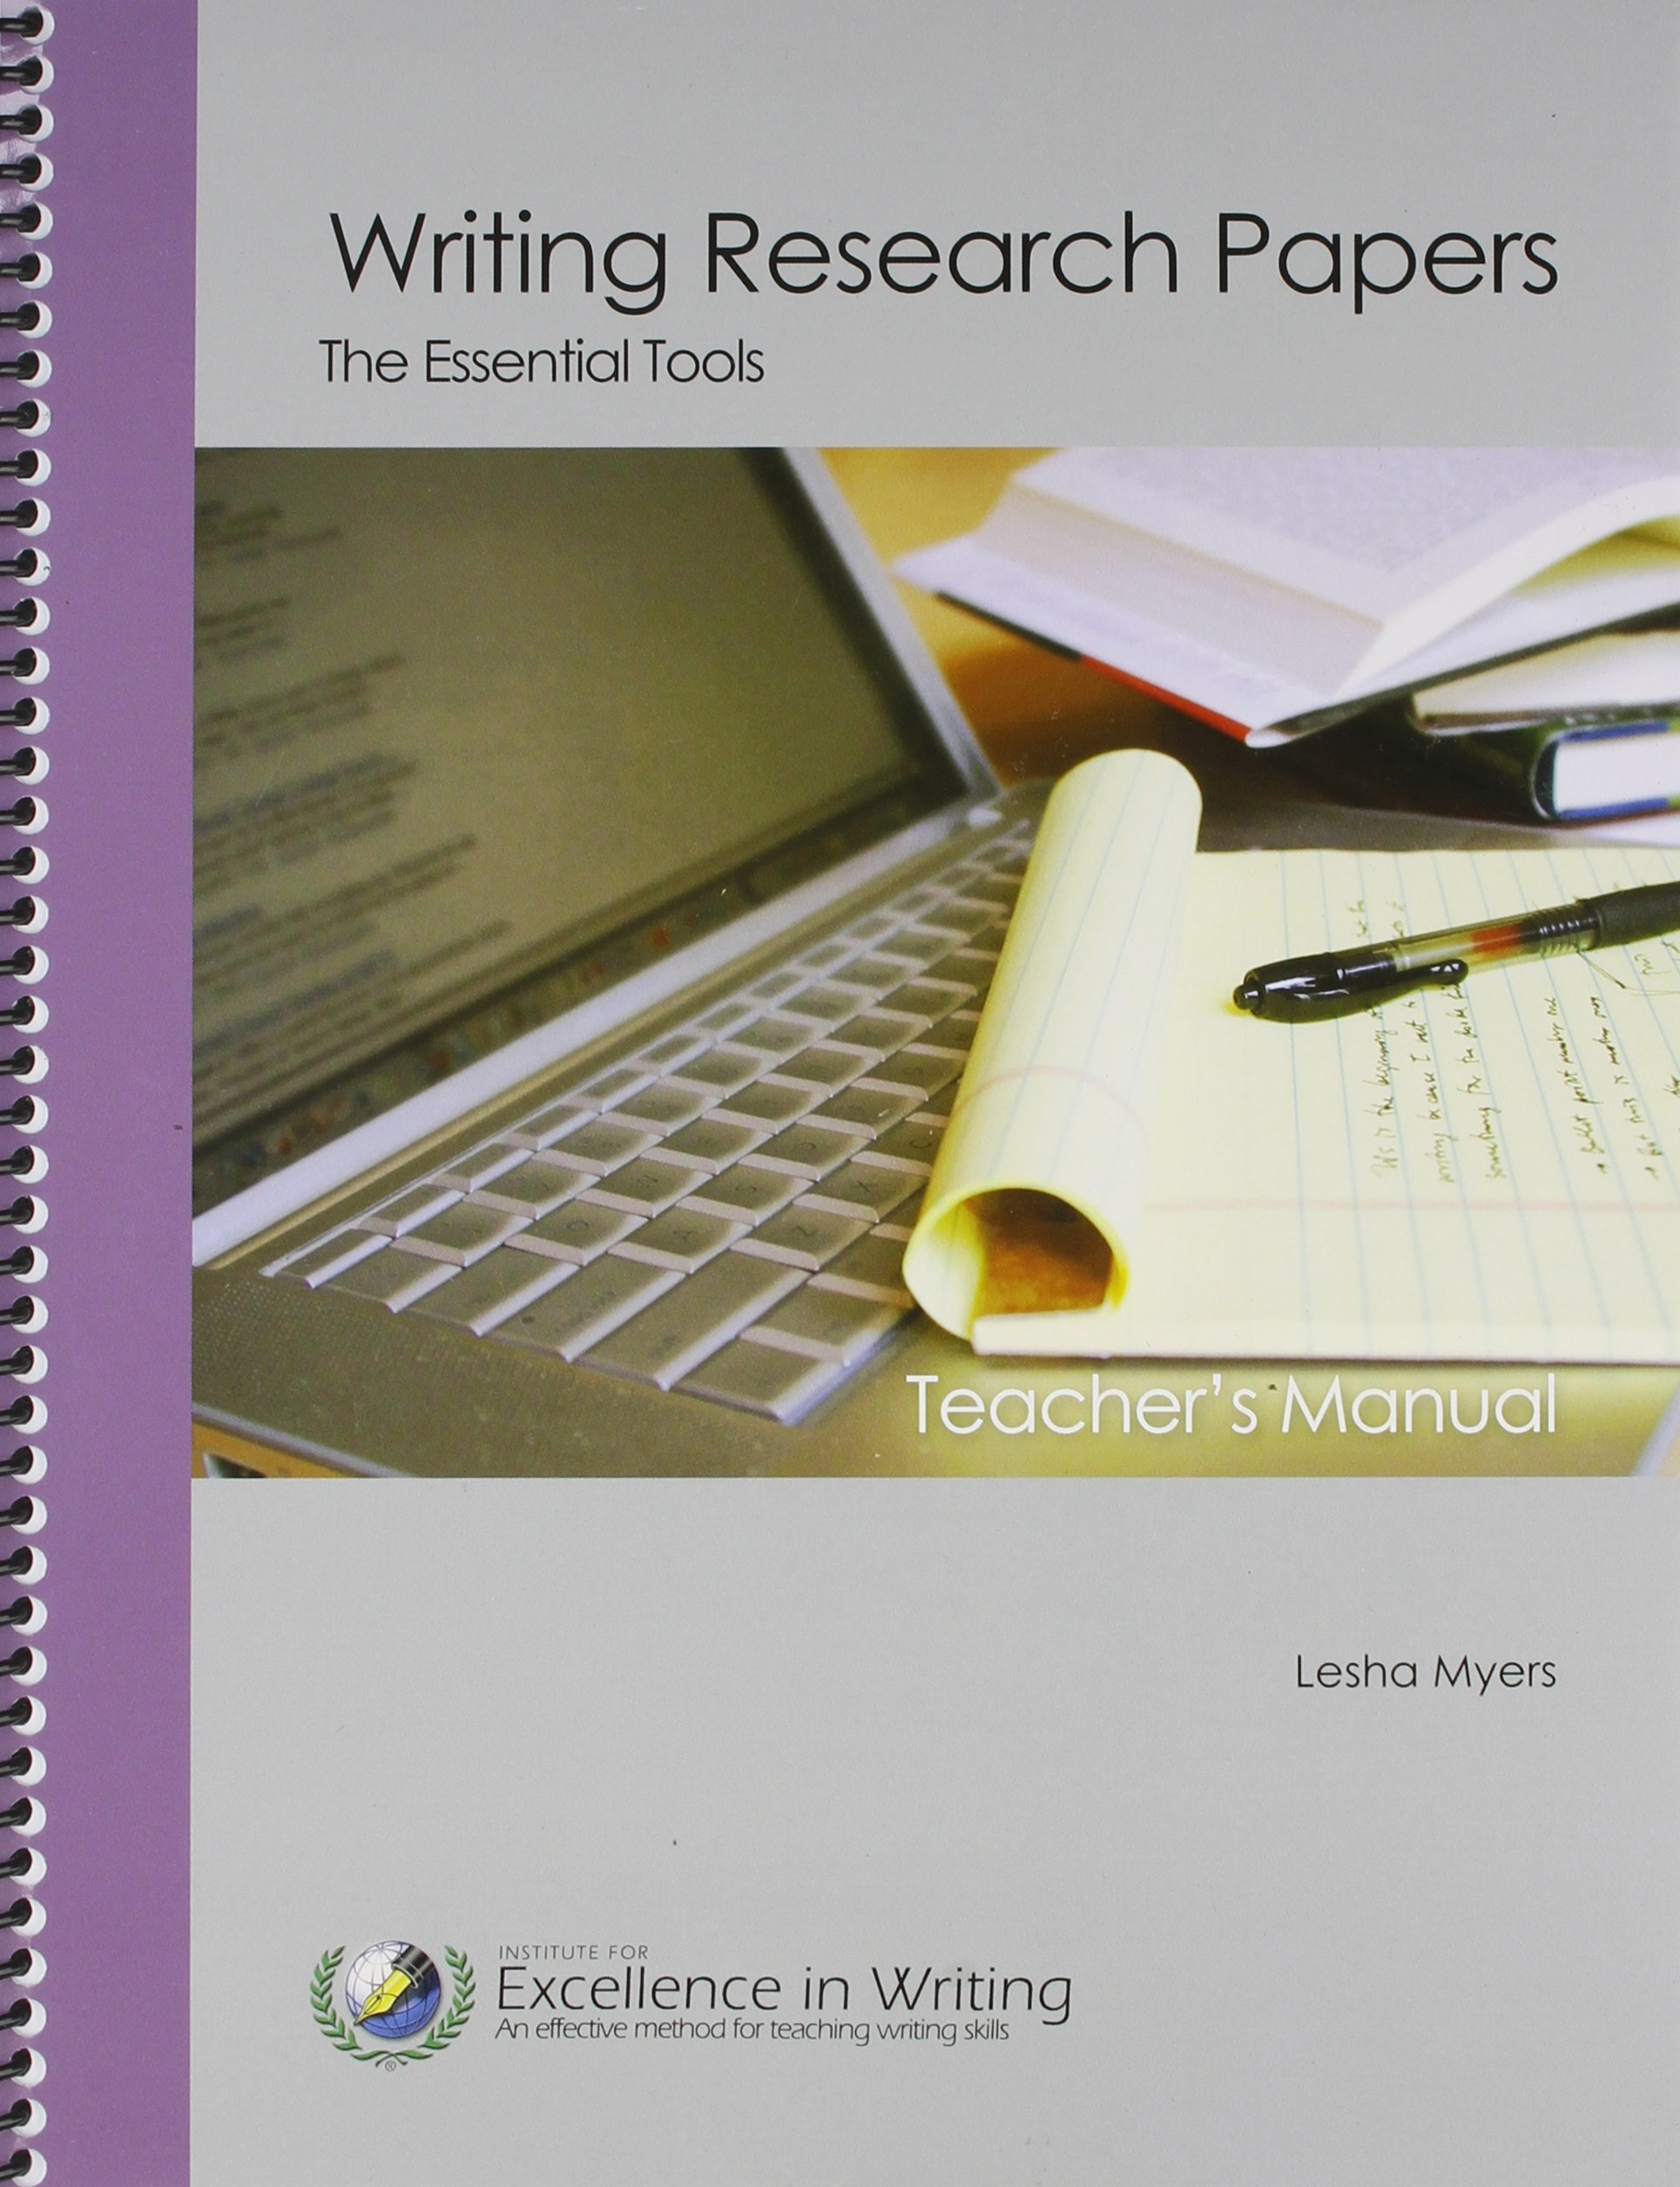 021 91ax63bn6xl Writing Research Striking Paper Papers Lester 16th Edition A Complete Guide James D. Full